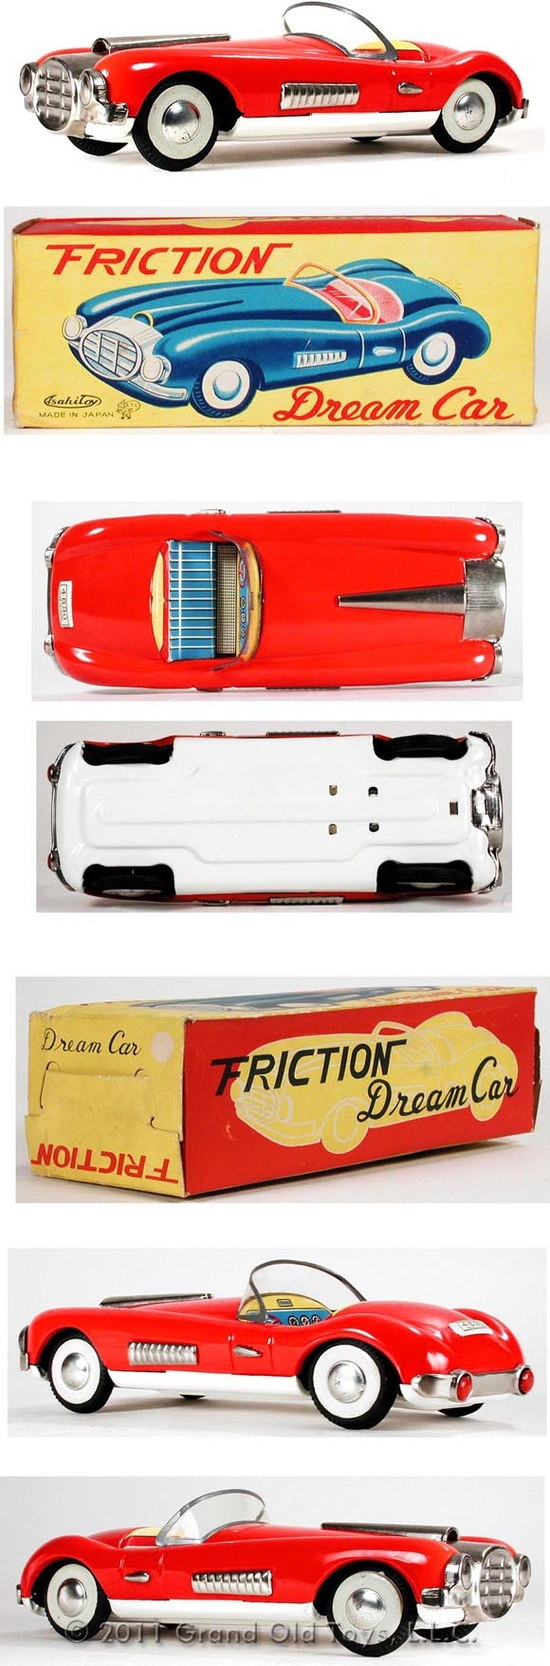 c.1960 Asahi Toy, Cunningham Dream Car In Original Box